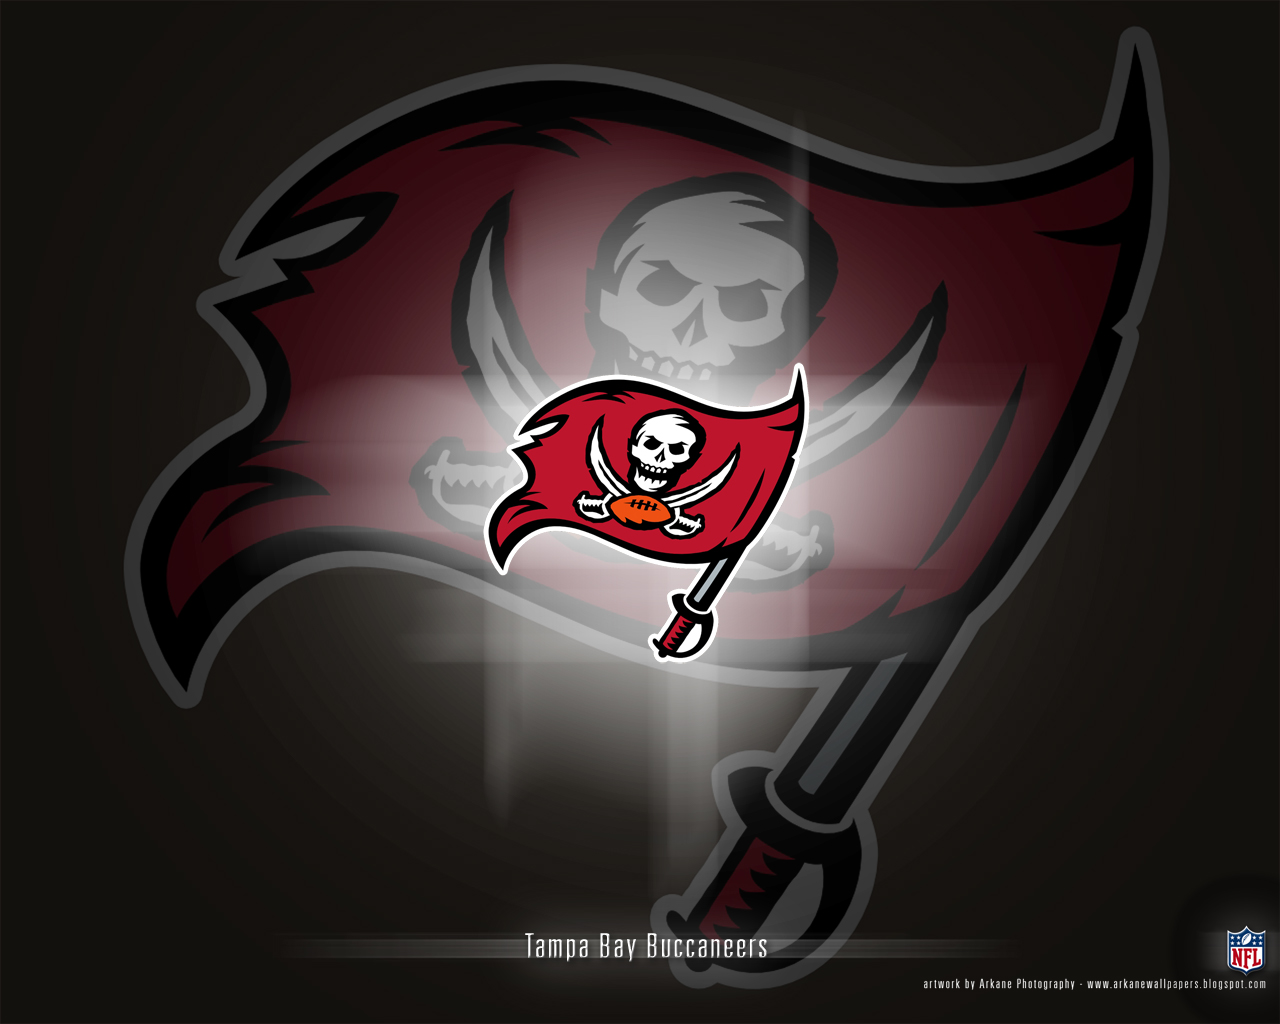 99 tampa bay buccaneers wallpapers on wallpapersafari 99 tampa bay buccaneers wallpapers on